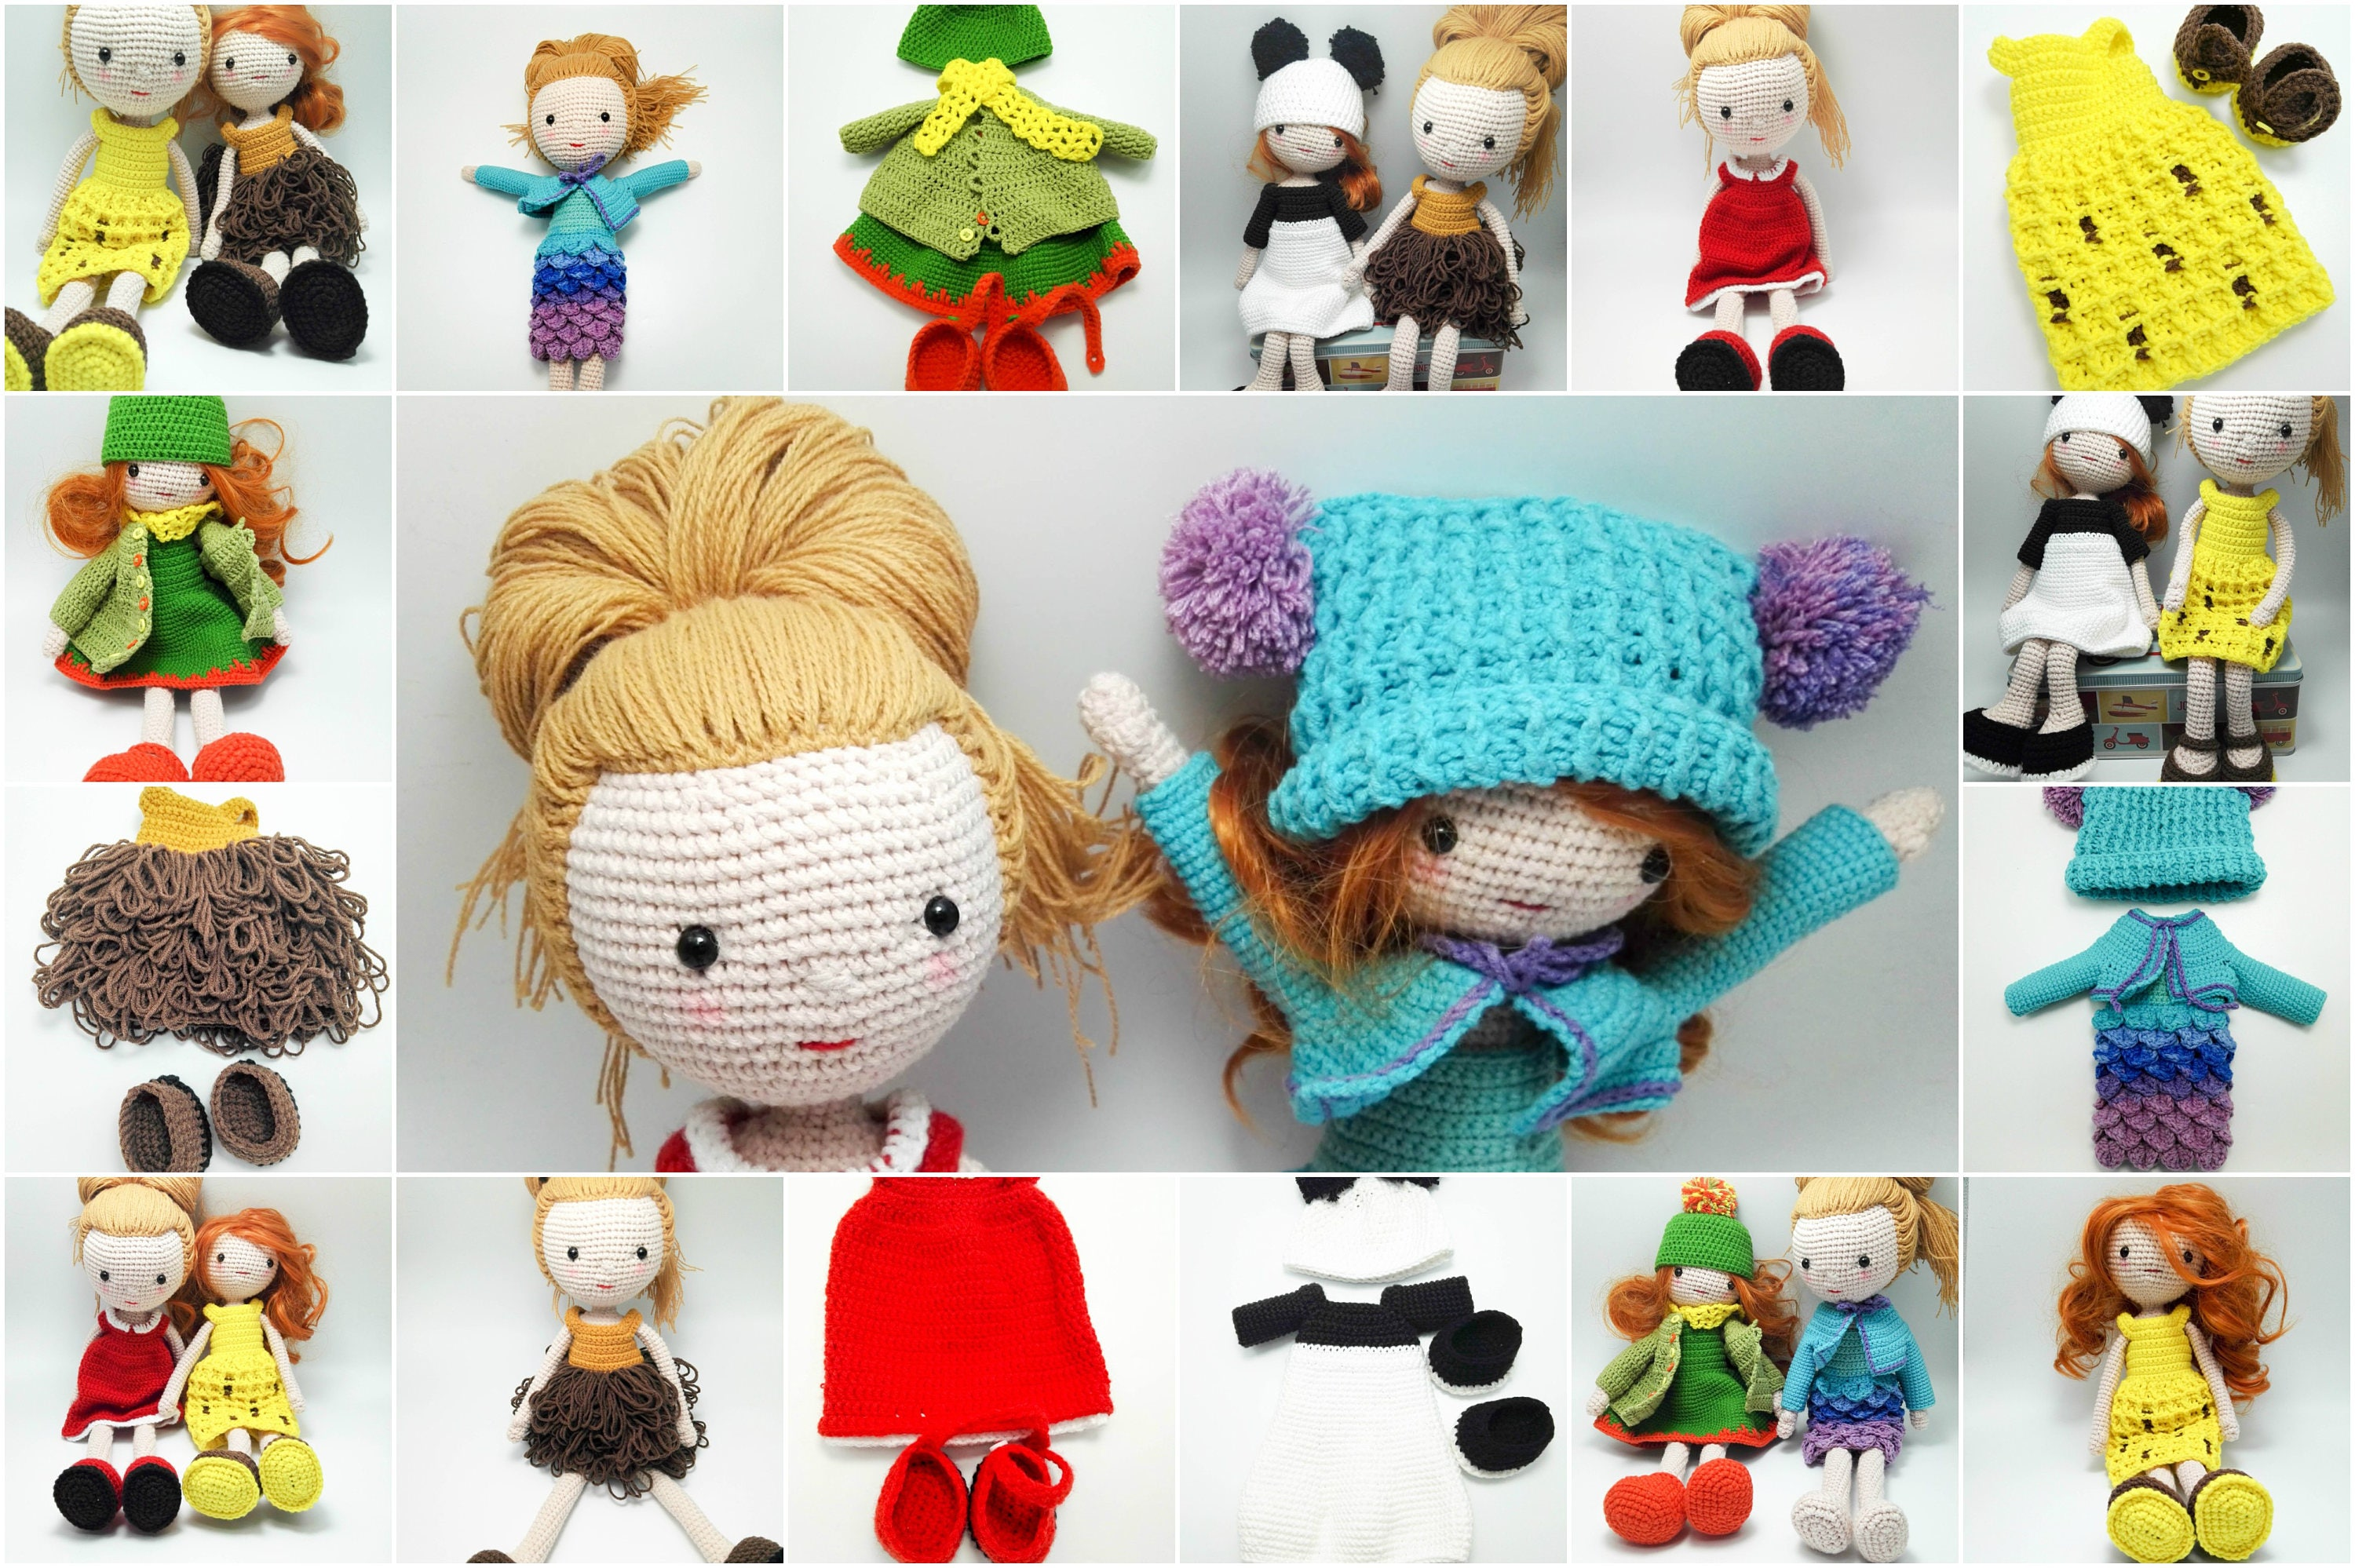 Crochet Dolls - (Clothes, Amigurumi, Tutorial) - Free Crochet ... | 1998x3000